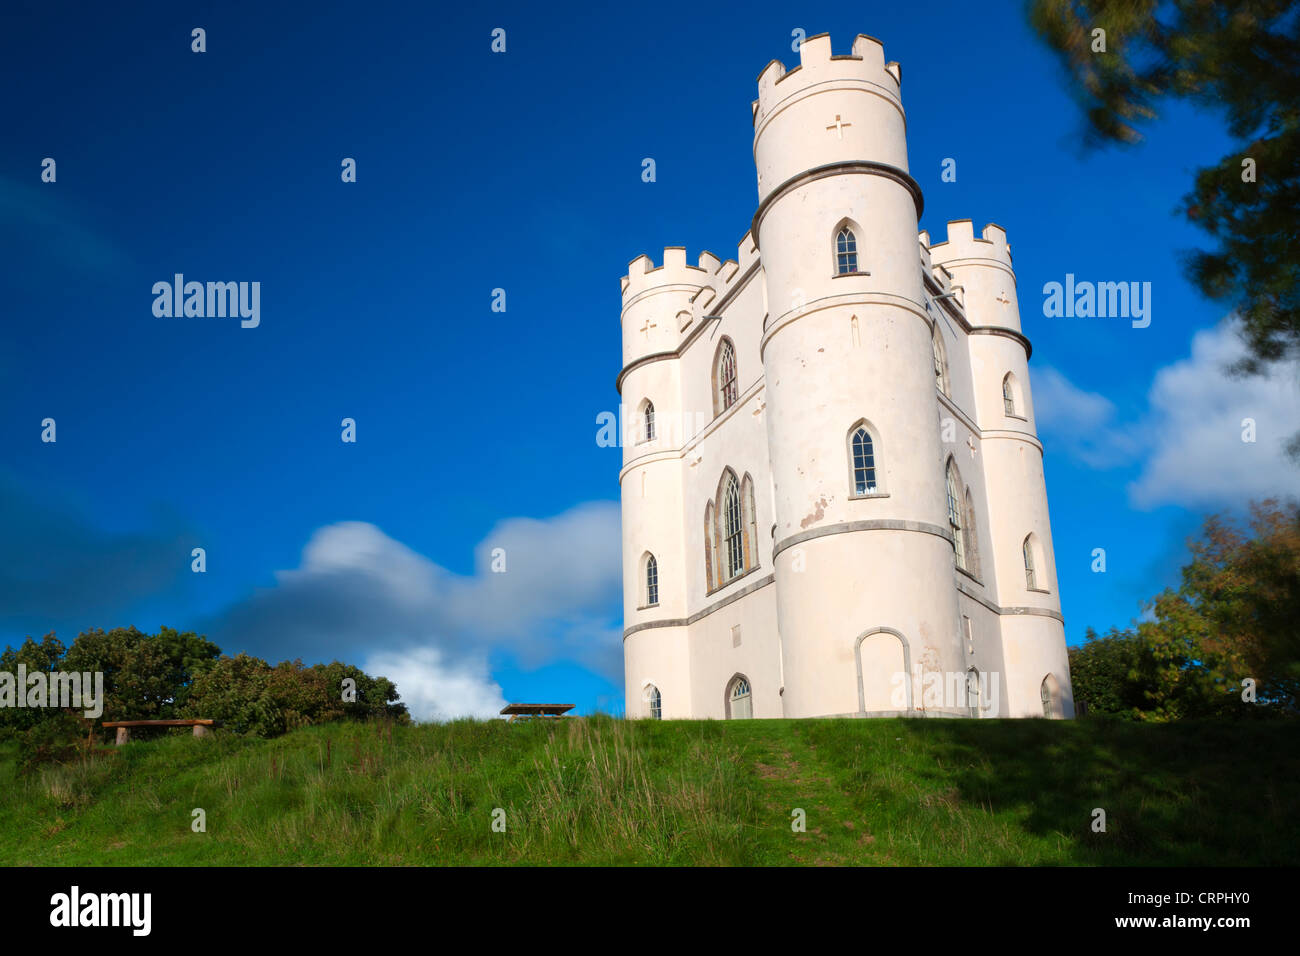 Haldon Belvedere, a Grade II listed triangular tower also known as Lawrence Castle, originally built in the late - Stock Image